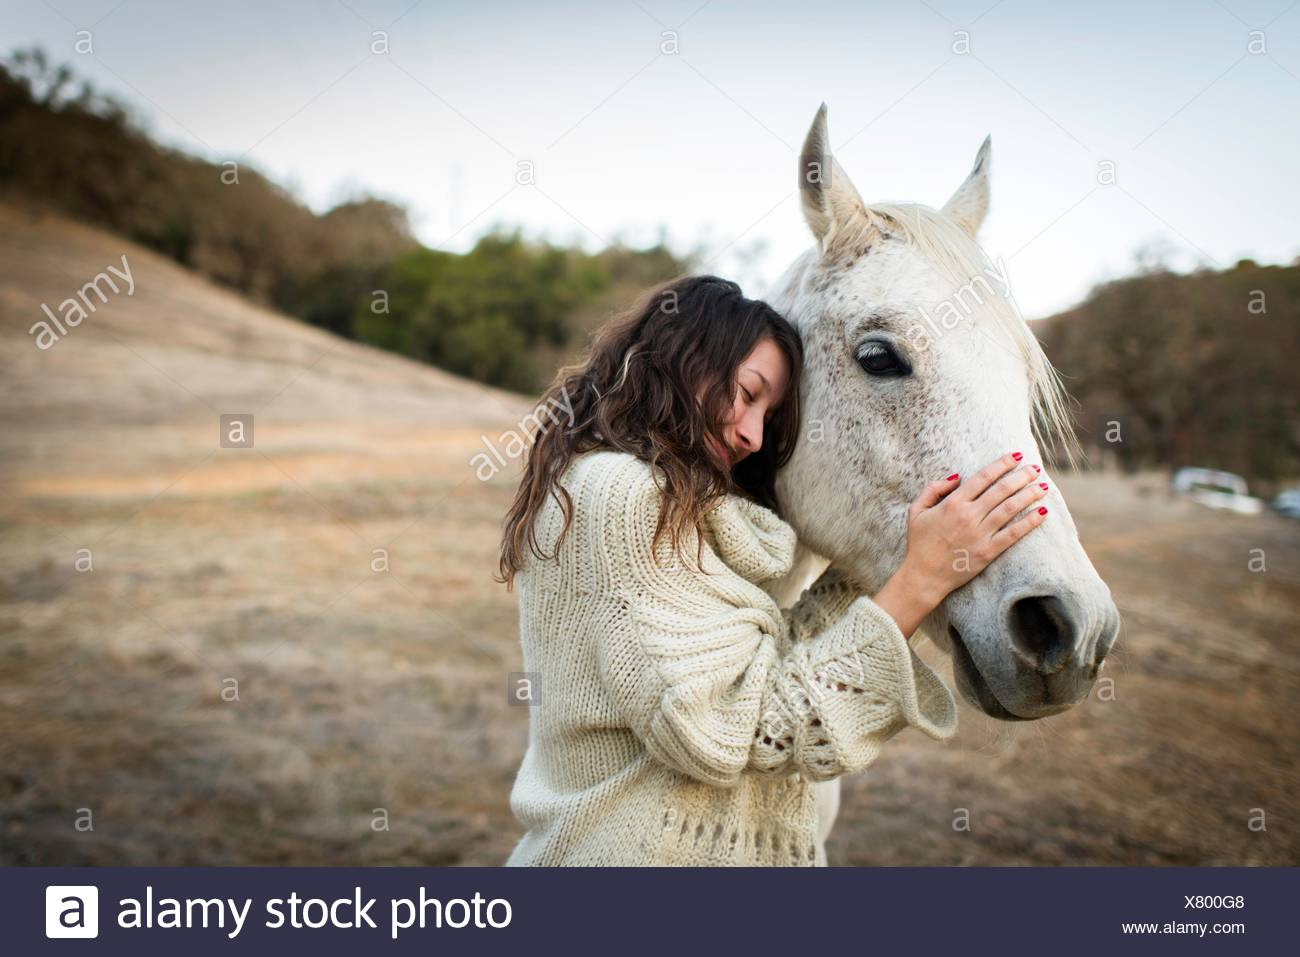 Young woman leaning against and petting white horse in field - Stock Image